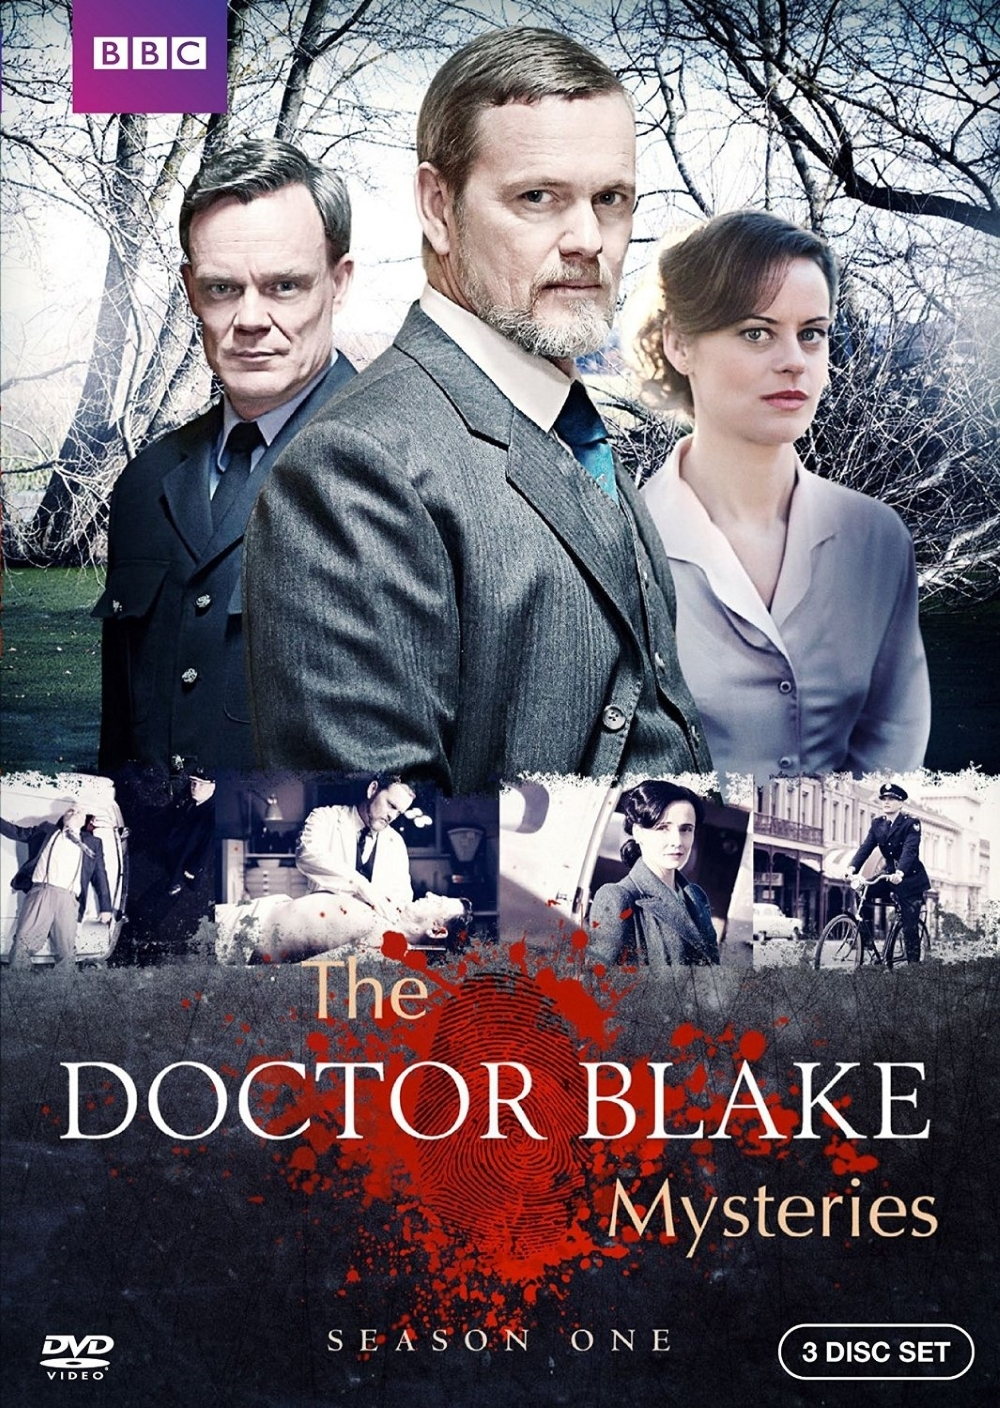 Doctor blake mysteries dvd complete first season one 1  2016  3 disc